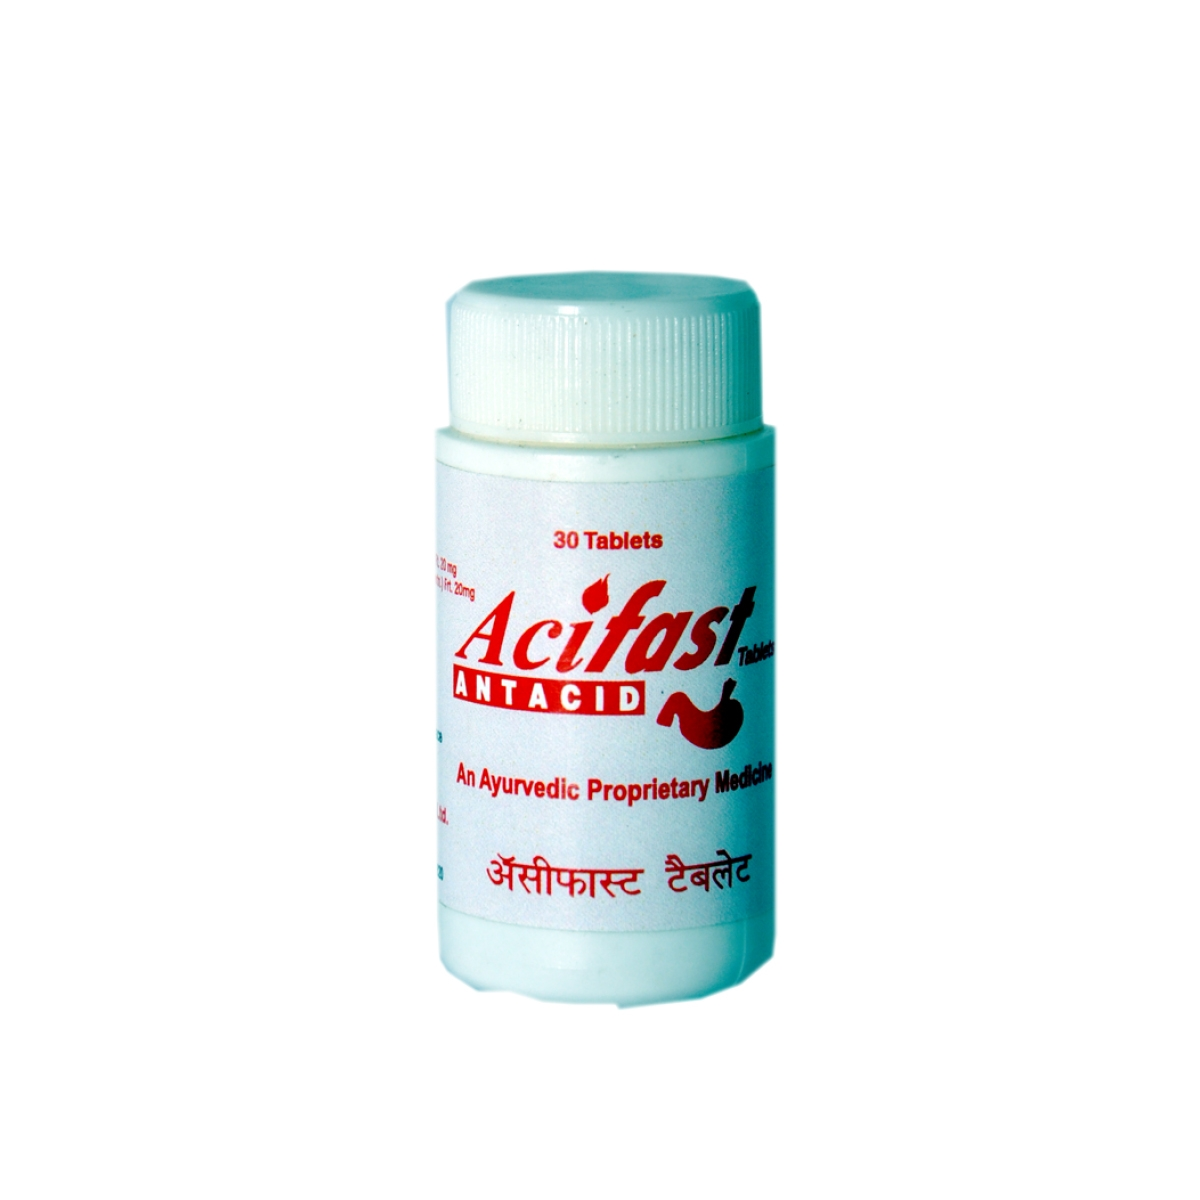 Acifast Tablet In Upper Siang